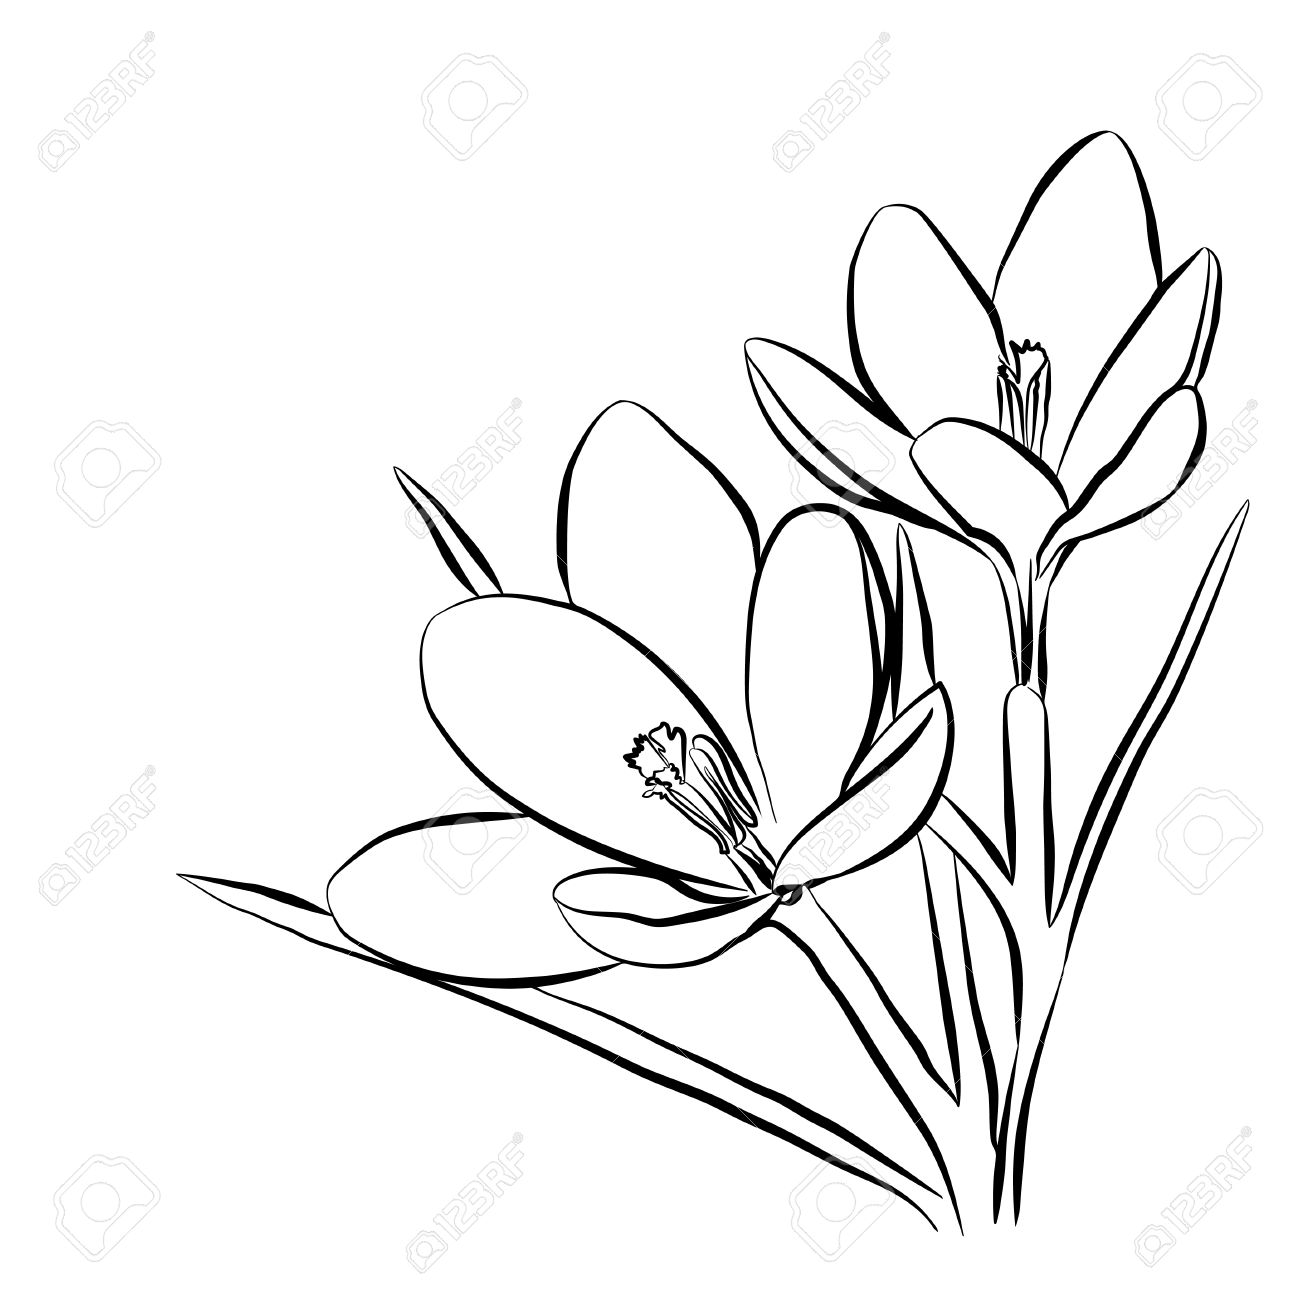 crocus flower drawing at getdrawings free